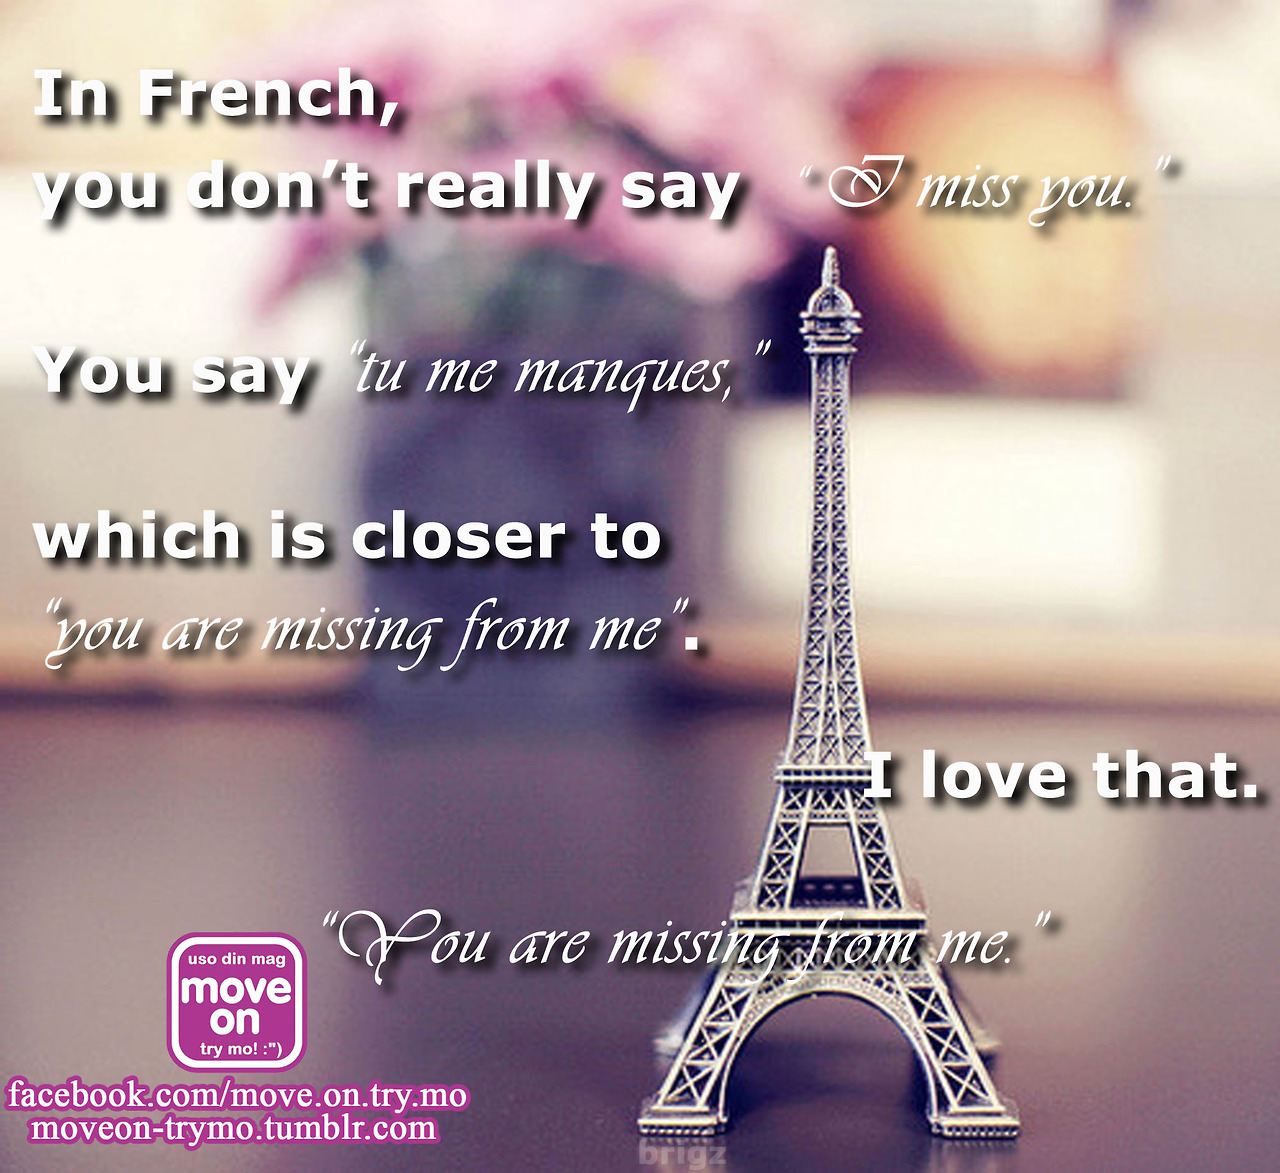 how to say you guys are dating in french